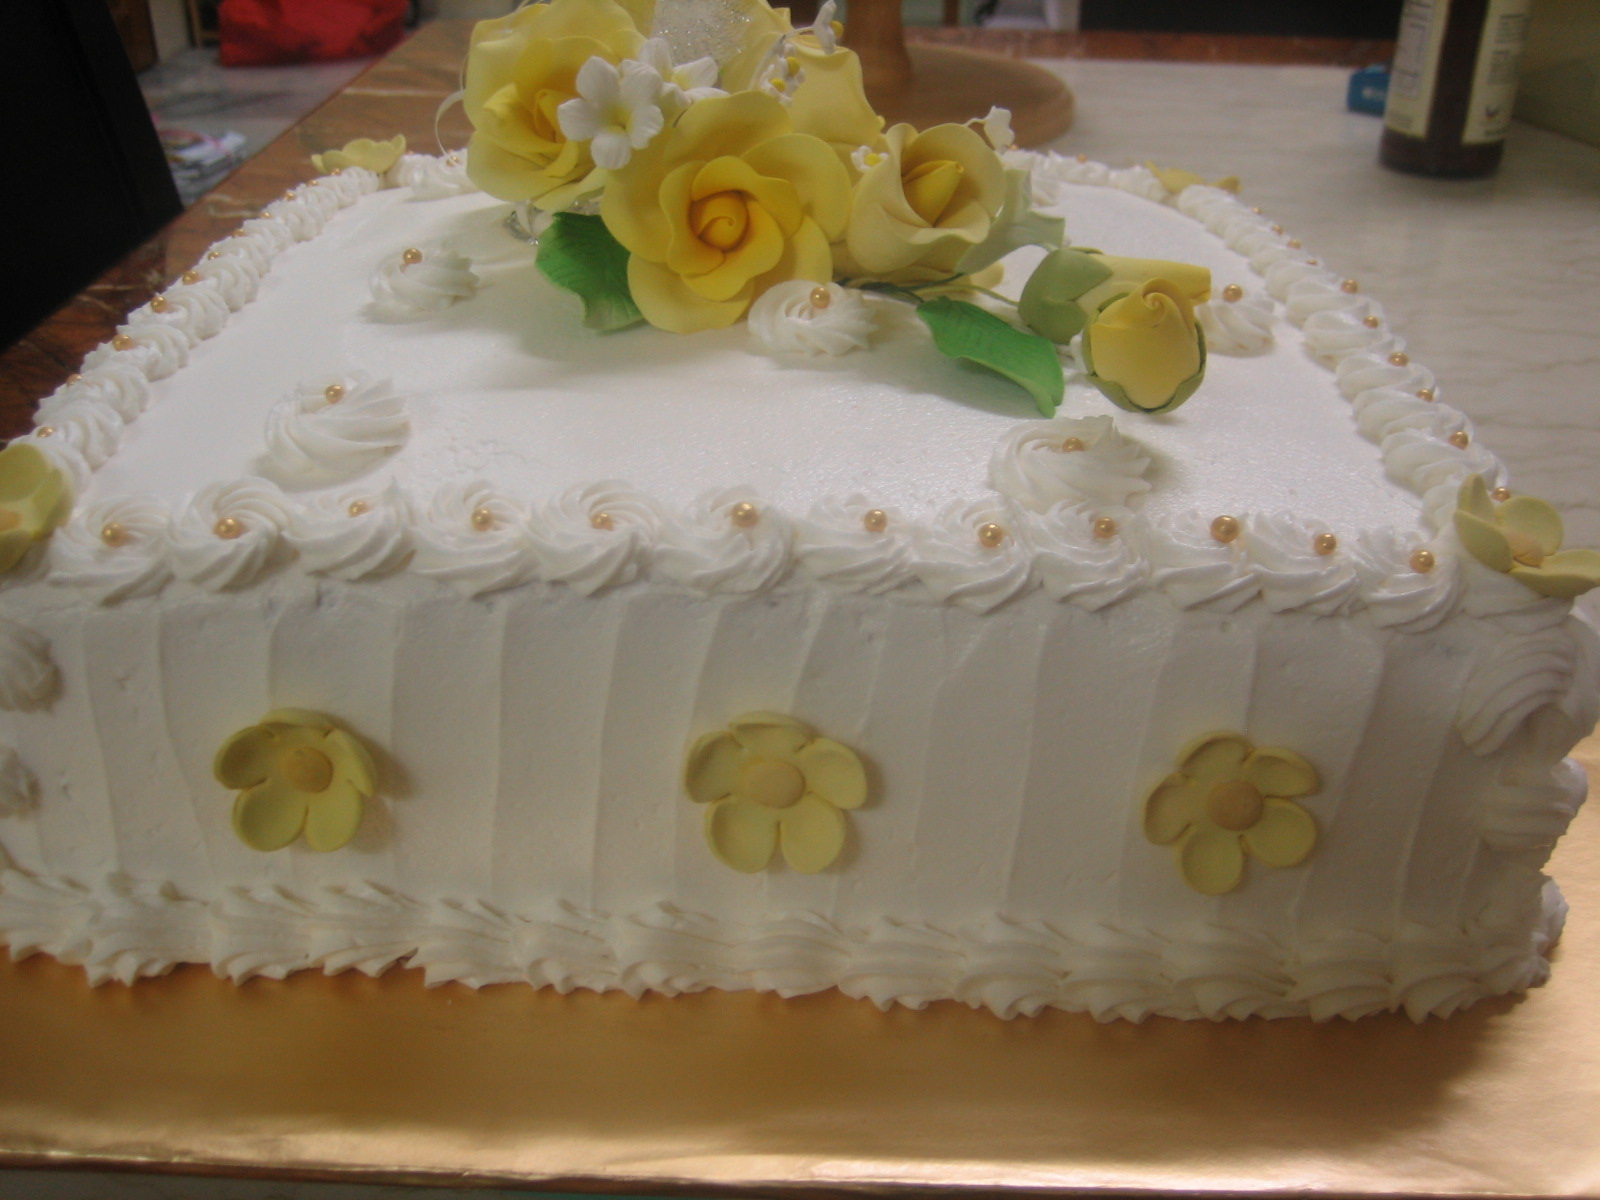 homemade sweet treats wedding cake delivered to tg ipoh n9